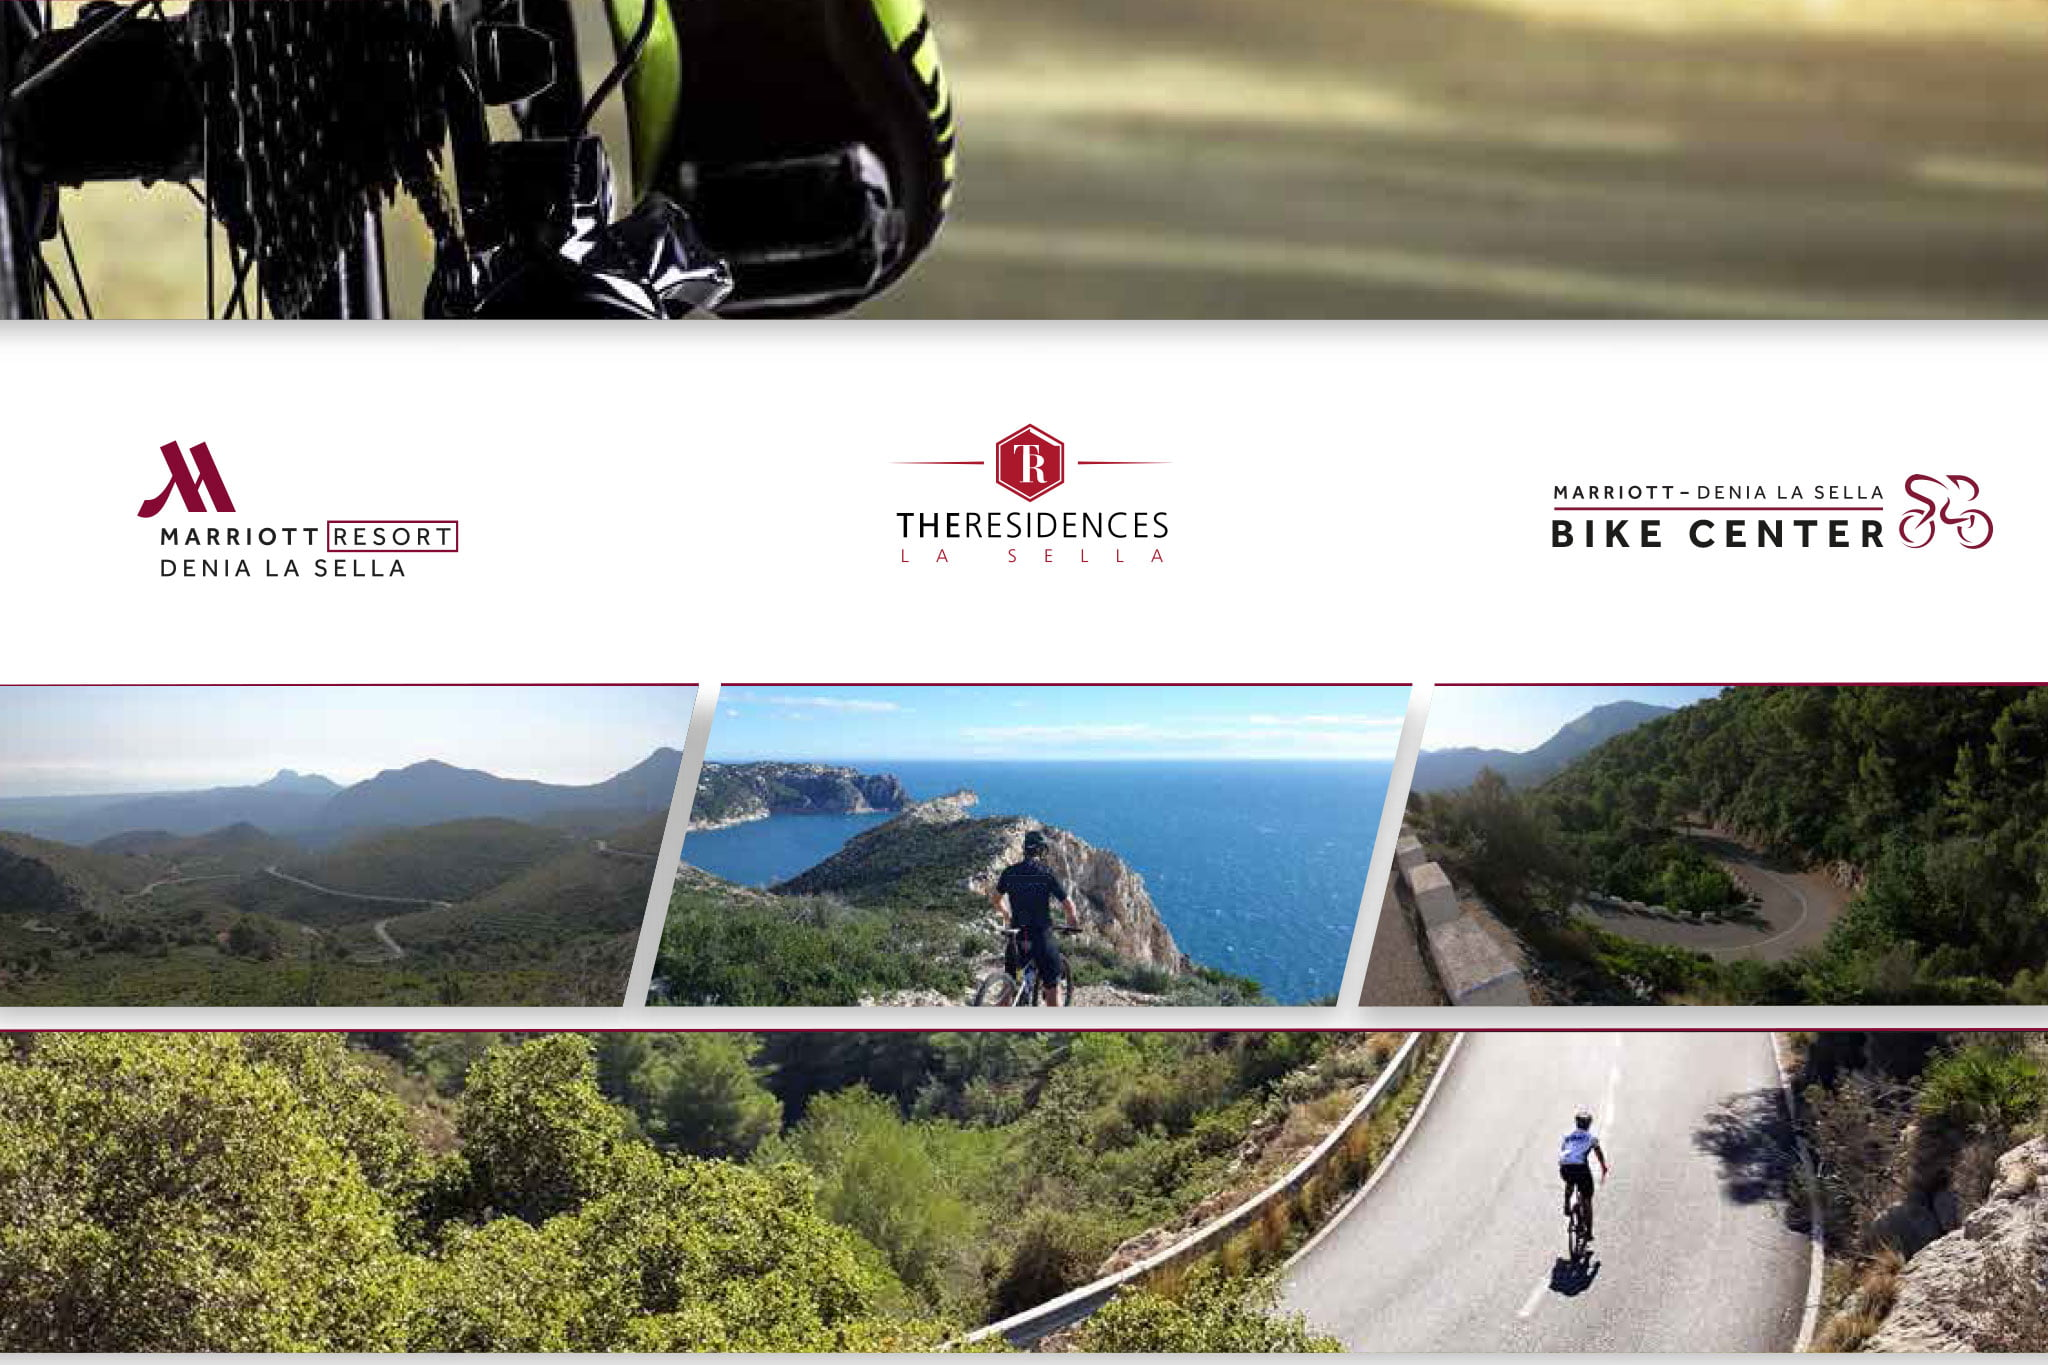 Training camps to start the season of professional cycling teams - Hotel Dénia Marriott La Sella Golf Resort & Spa